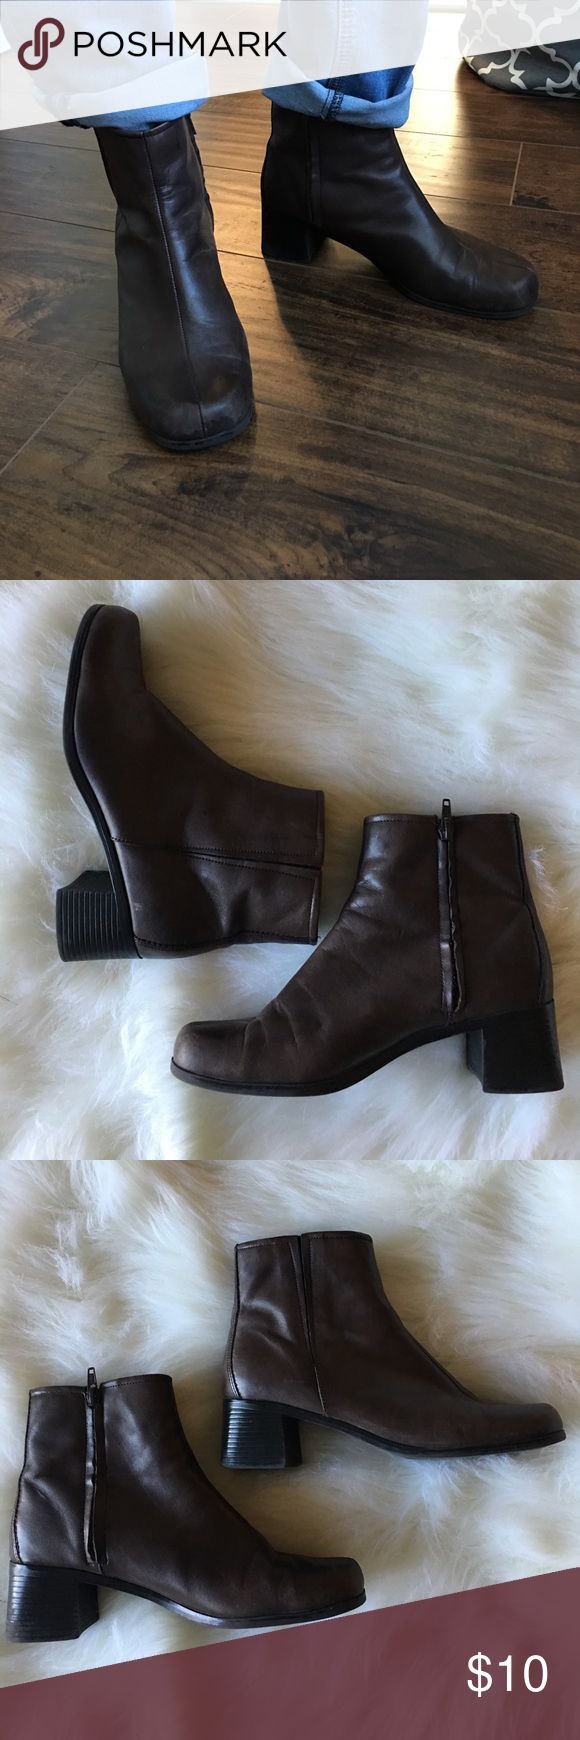 Ankle boots Good used condition. Some wear on front toe area. Smoke free and pet free home. Predictions Shoes Ankle Boots & Booties